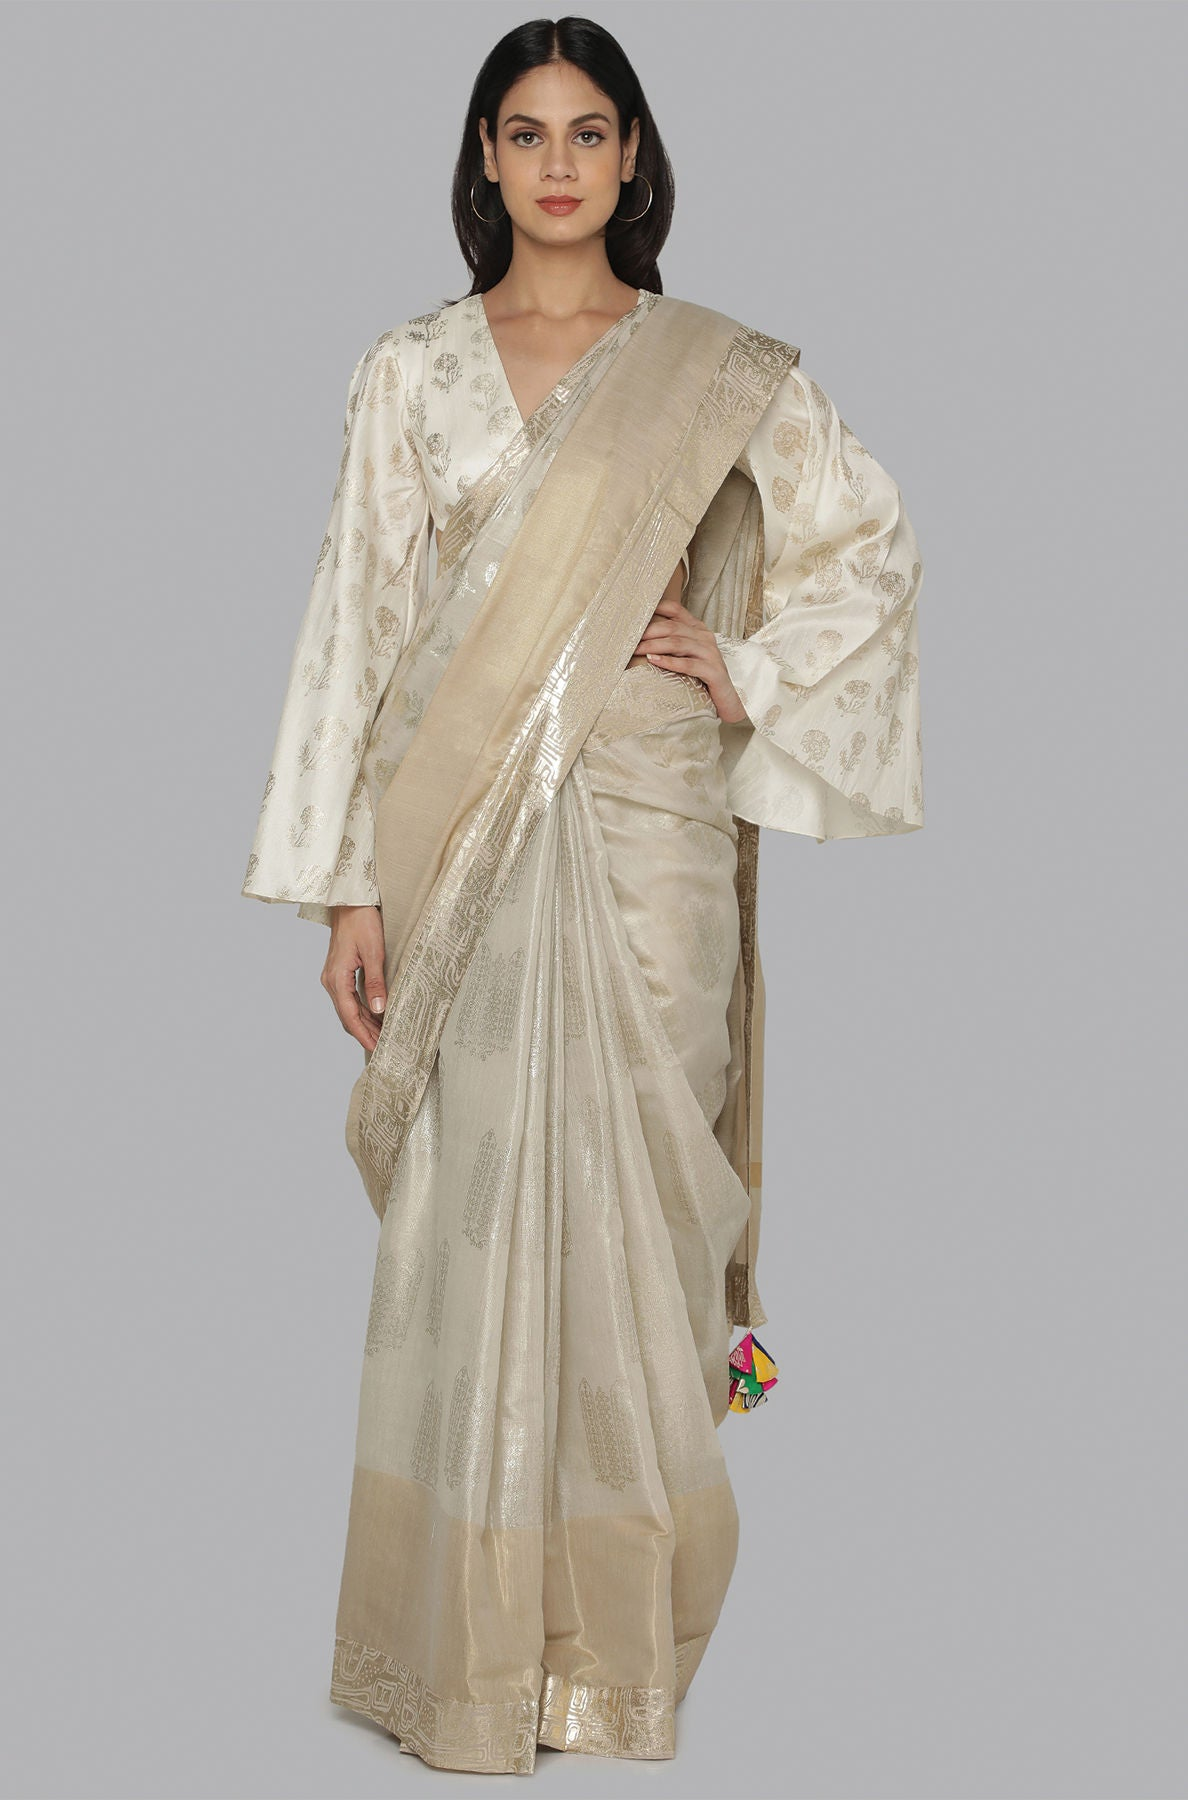 IVORY SILVER GOLD MARIGOLD FLOWERS AND NEEDLES FOIL HALF & HALF BANARSI SARI IVORY MARIGOLD FOIL BLOUSE PIECE - The Grand Trunk